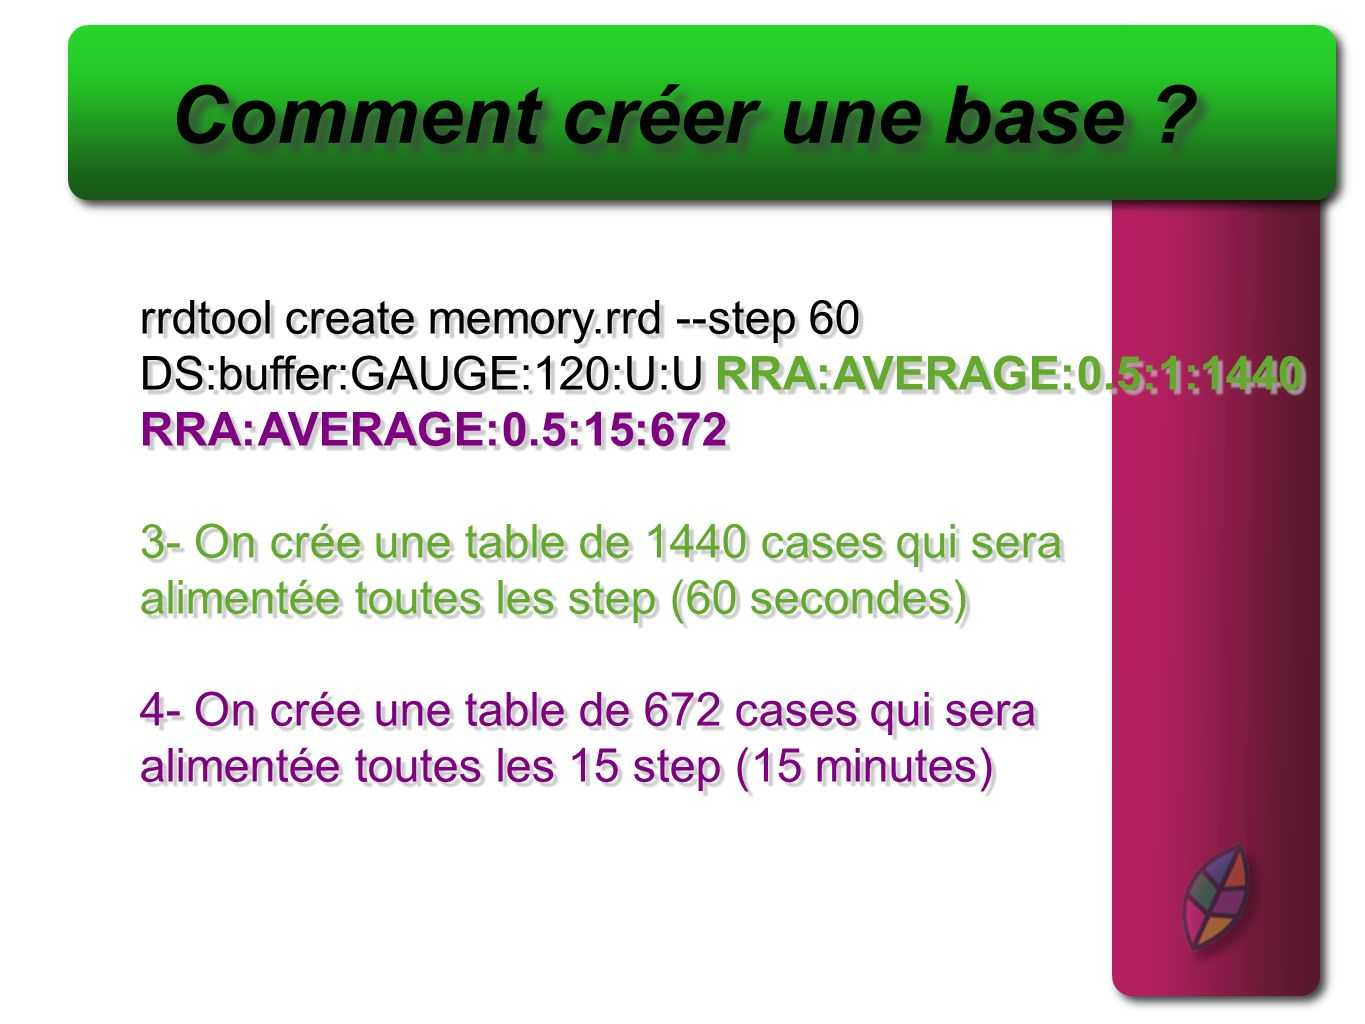 rrdtool create memory.rrd --step 60 DS:buffer:GAUGE:120:U:U RRA:AVERAGE:0.5:1:1440 RRA:AVERAGE:0.5:15:672 3- On crée une table de 1440 cases qui sera